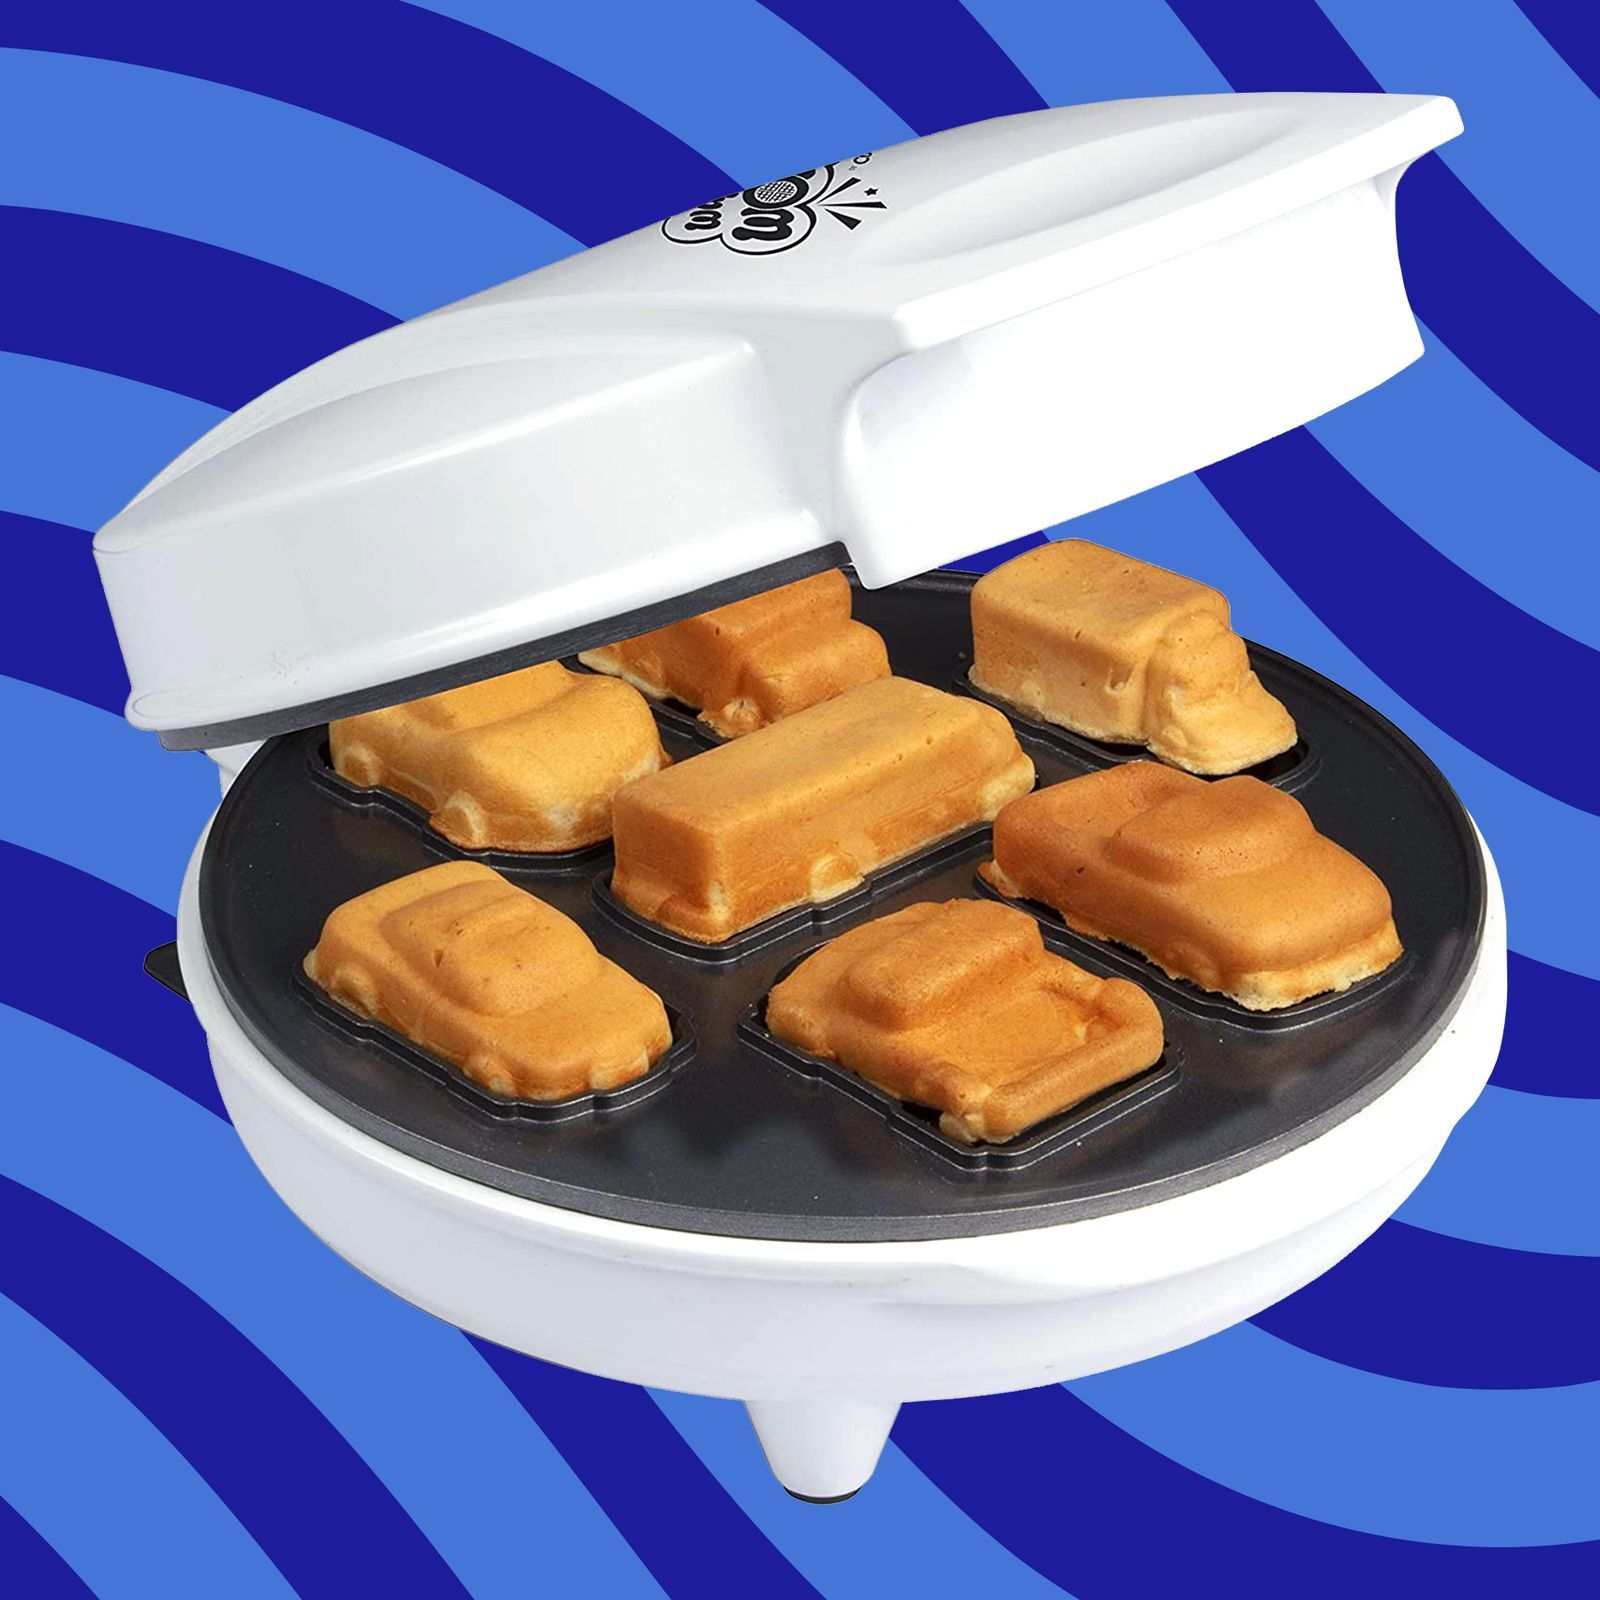 This Waffle Maker Creates 3D Cars And Trucks, So It's